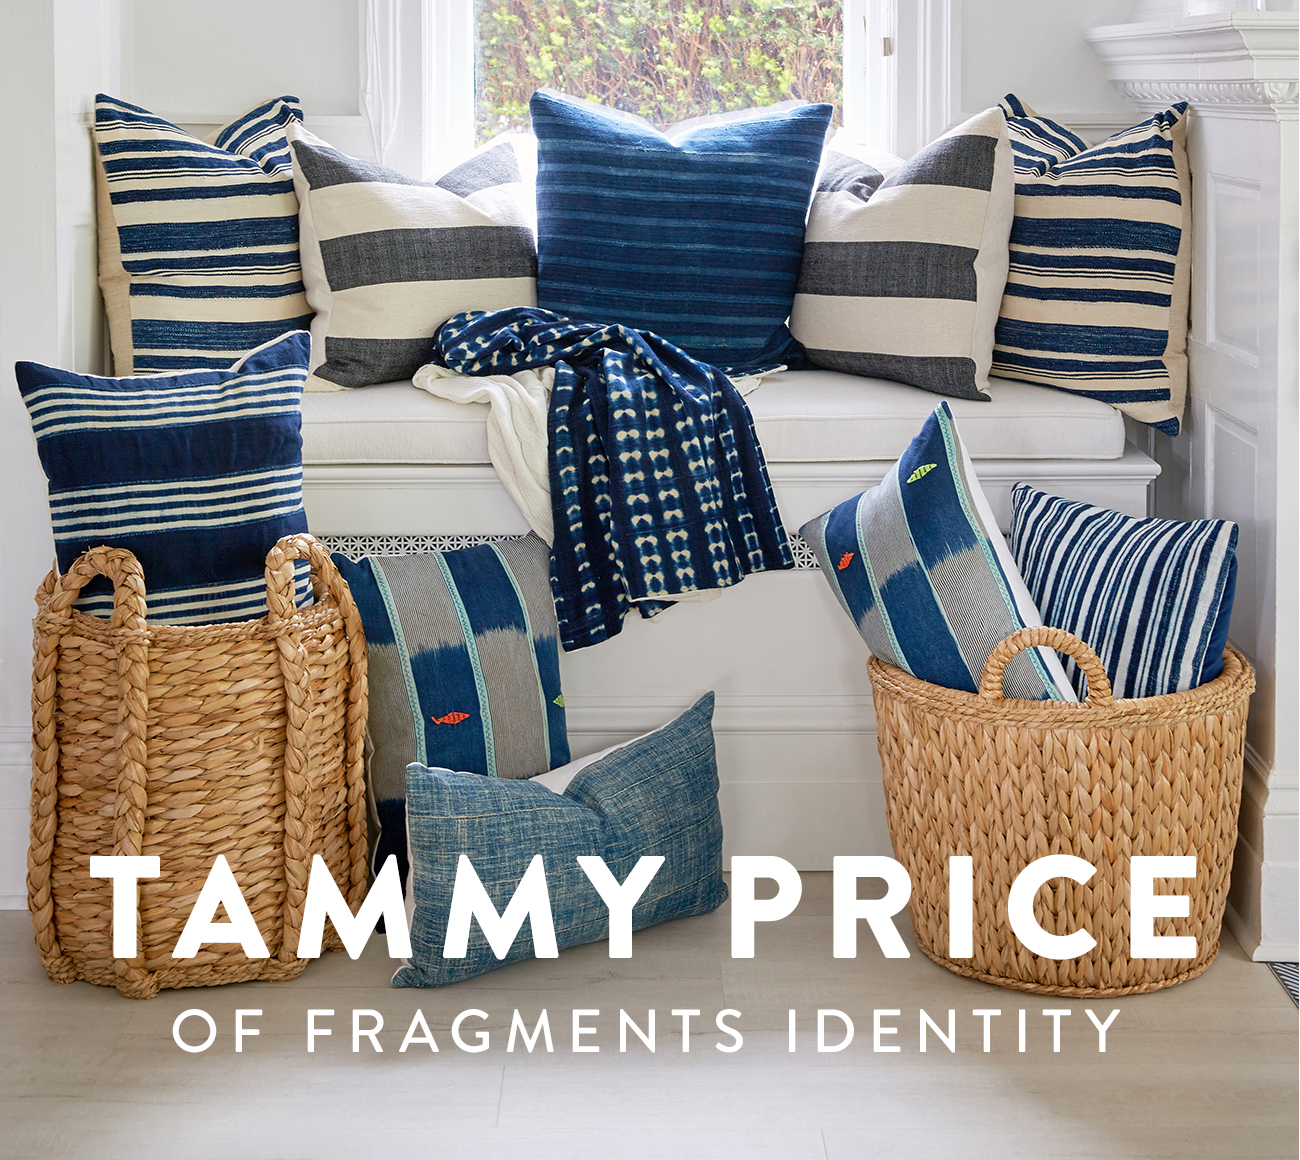 Tammy Price of Fragments Identity